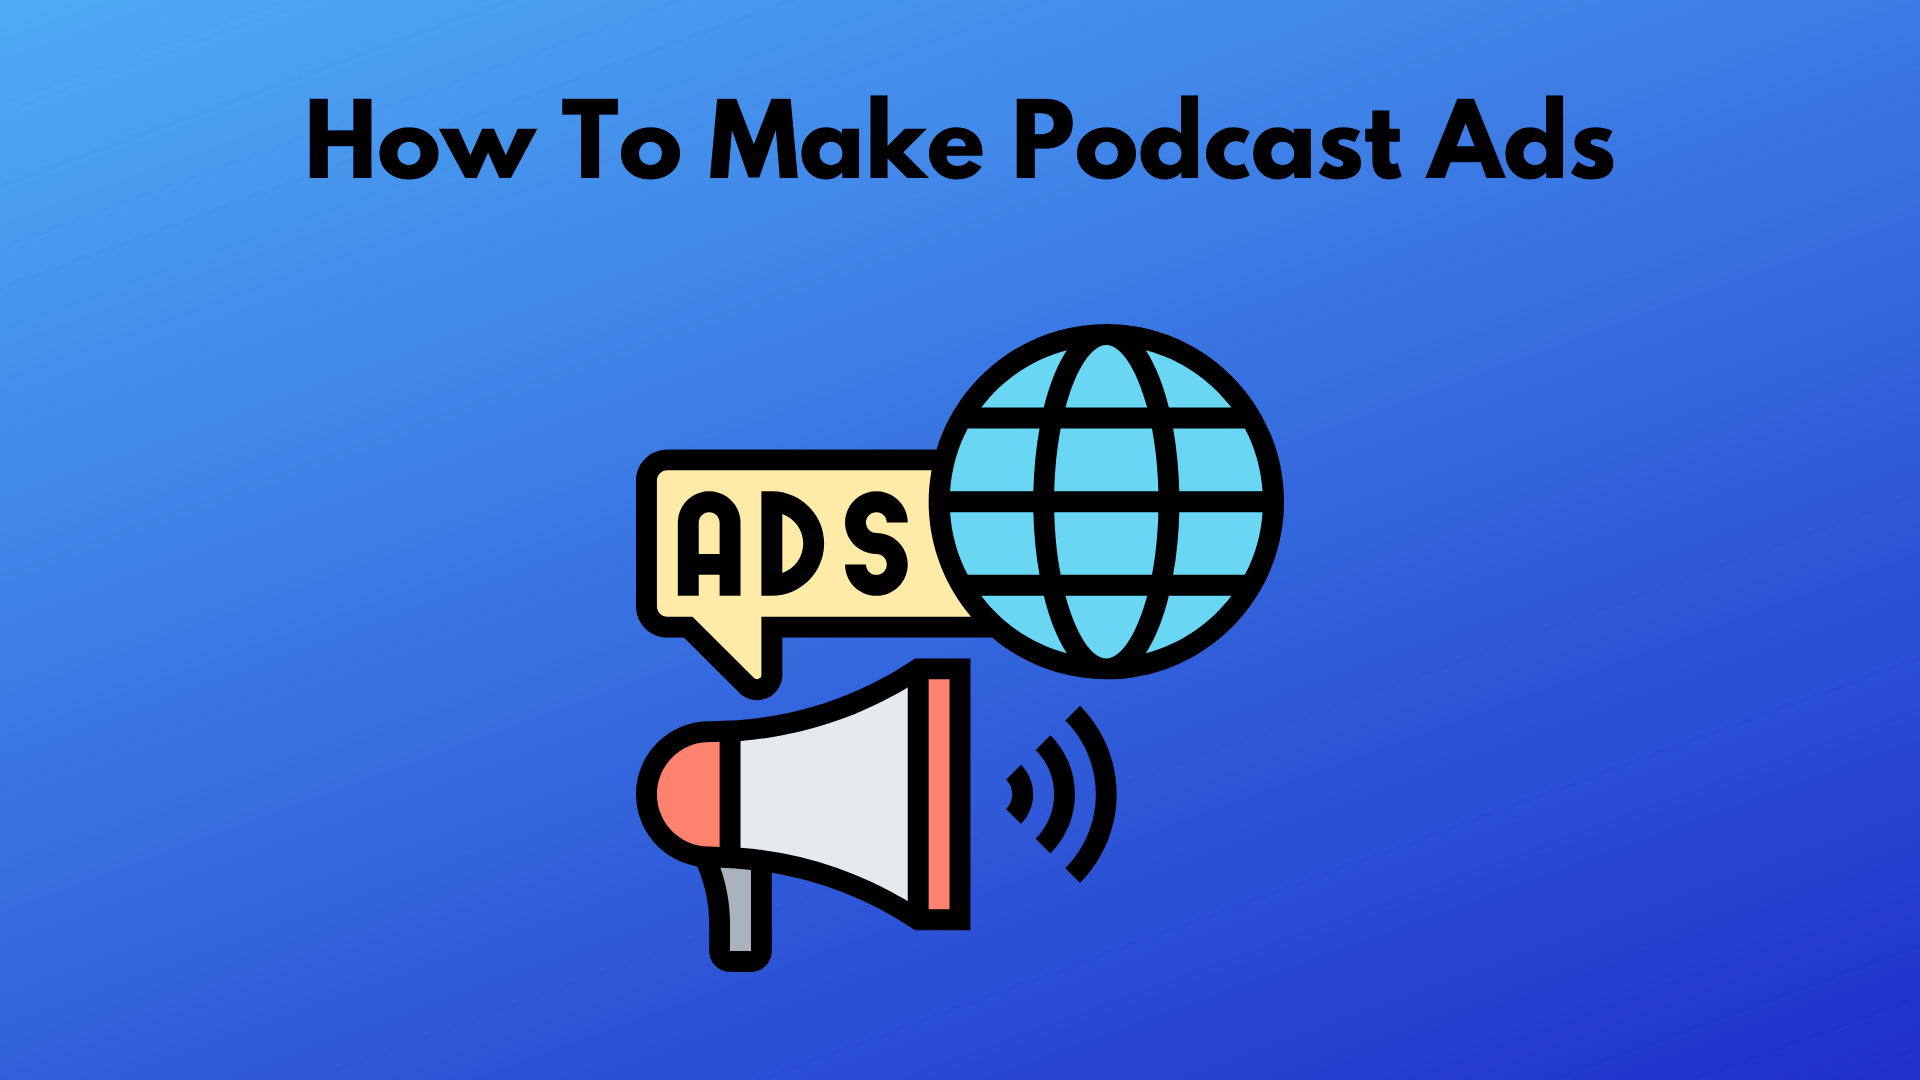 How to Make Podcast Ads